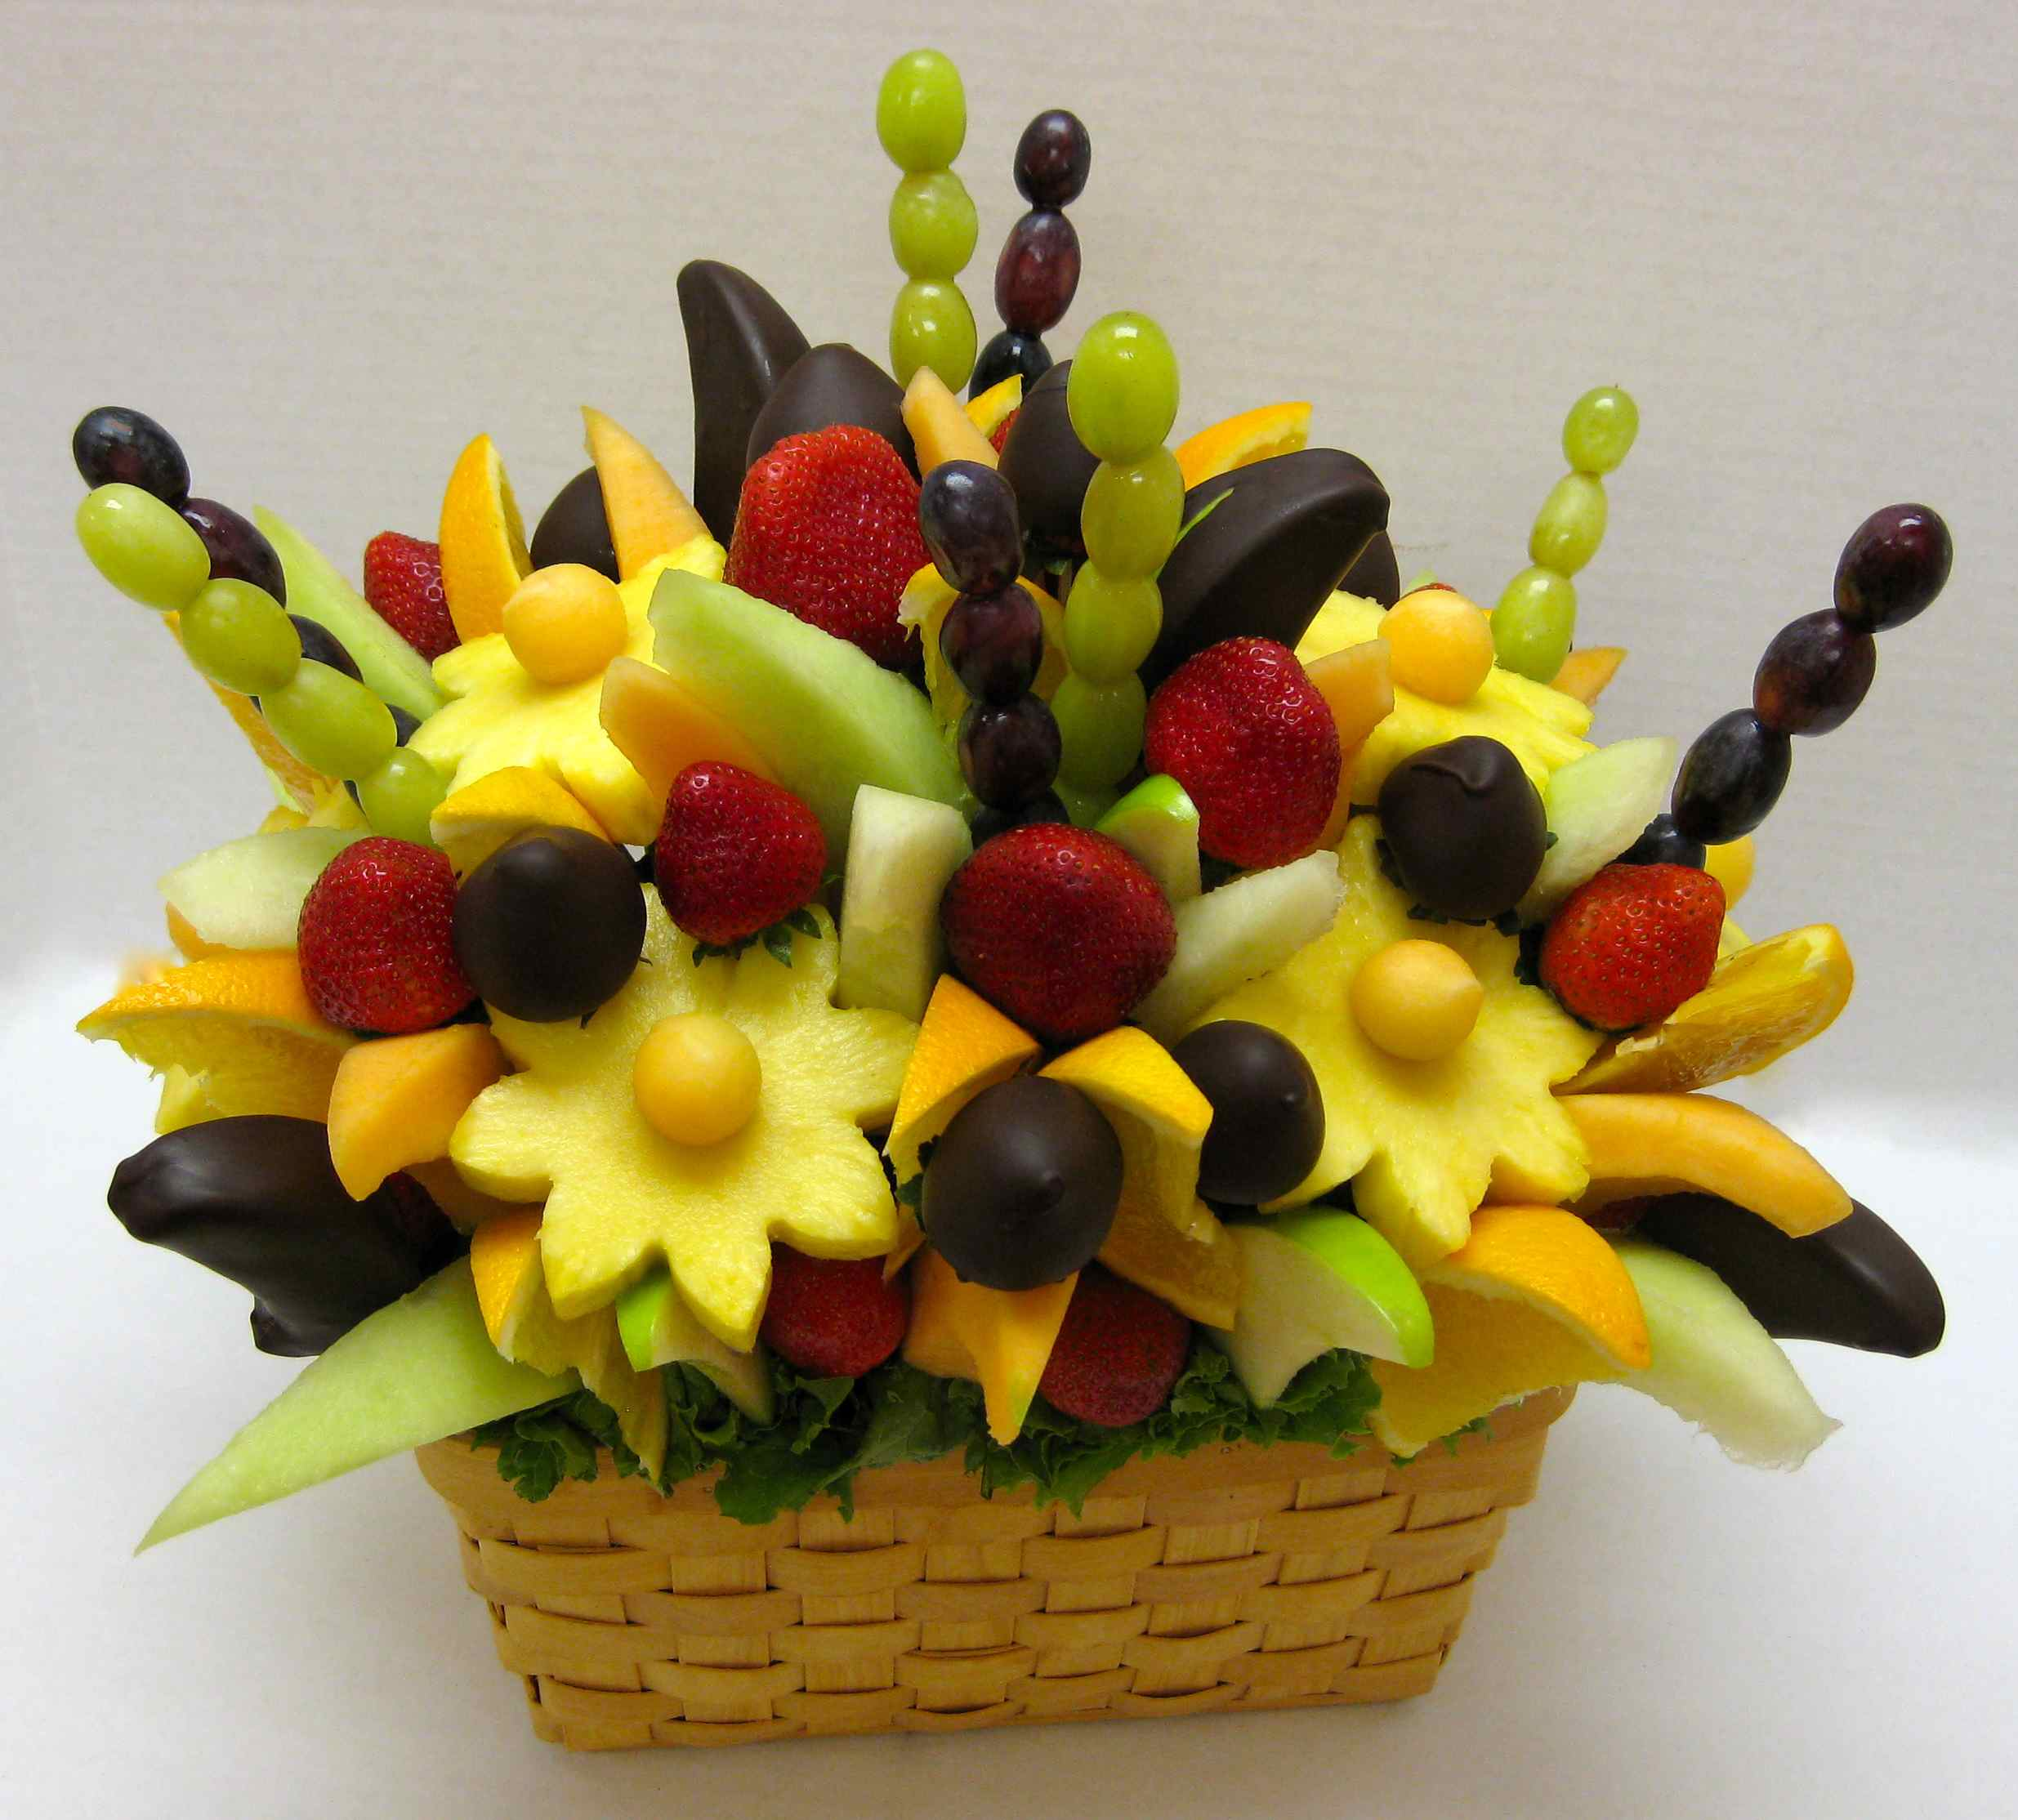 Very Best How to Make Edible Arrangements Fruit Baskets 2470 x 2228 · 222 kB · jpeg